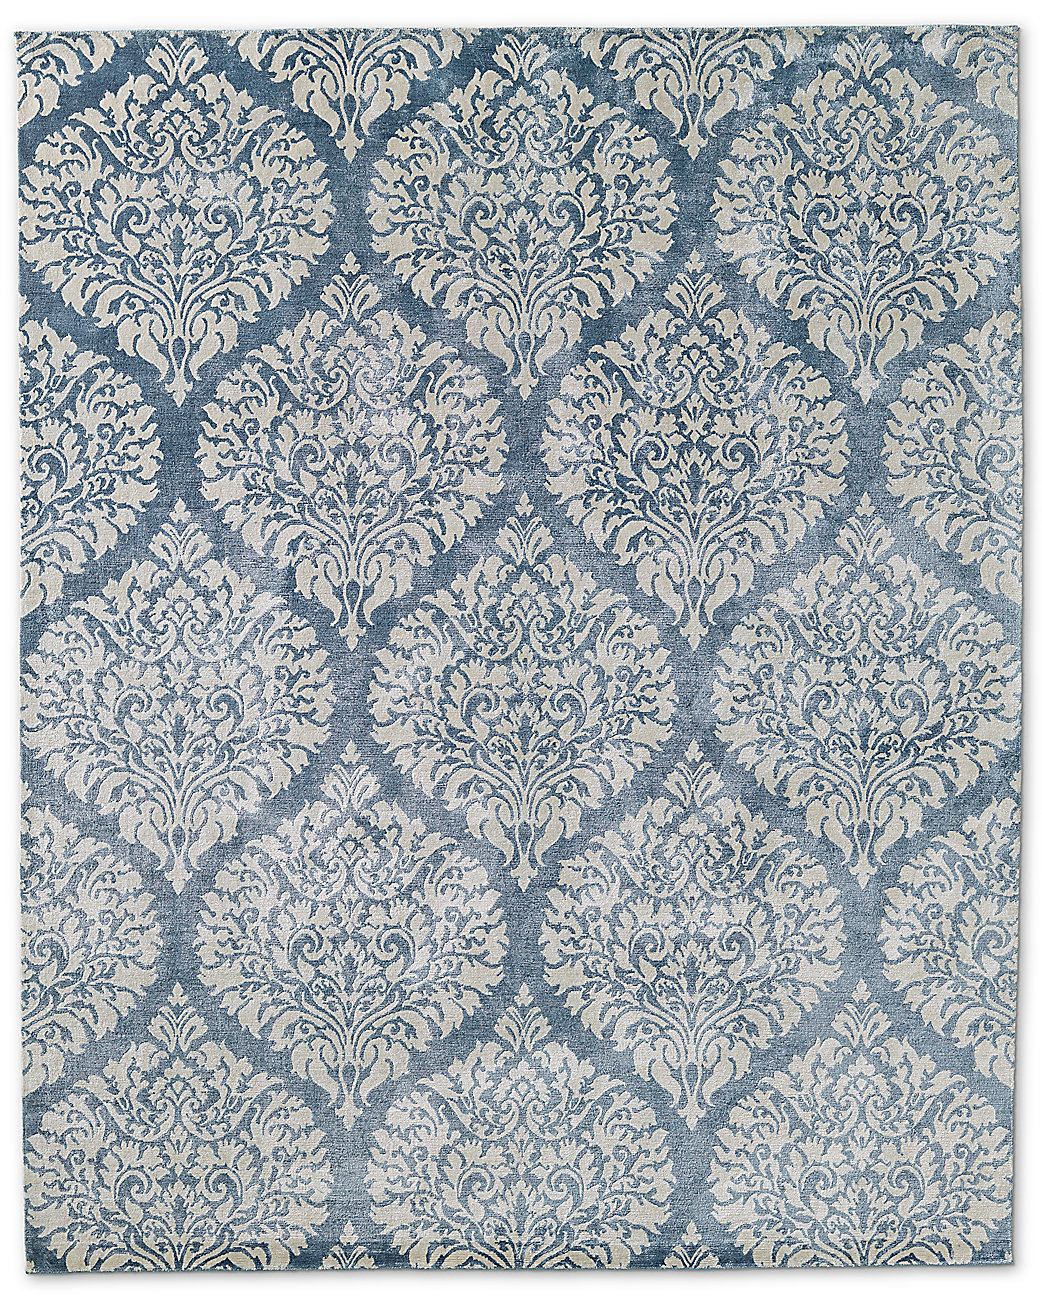 Damasco Rug - Blue